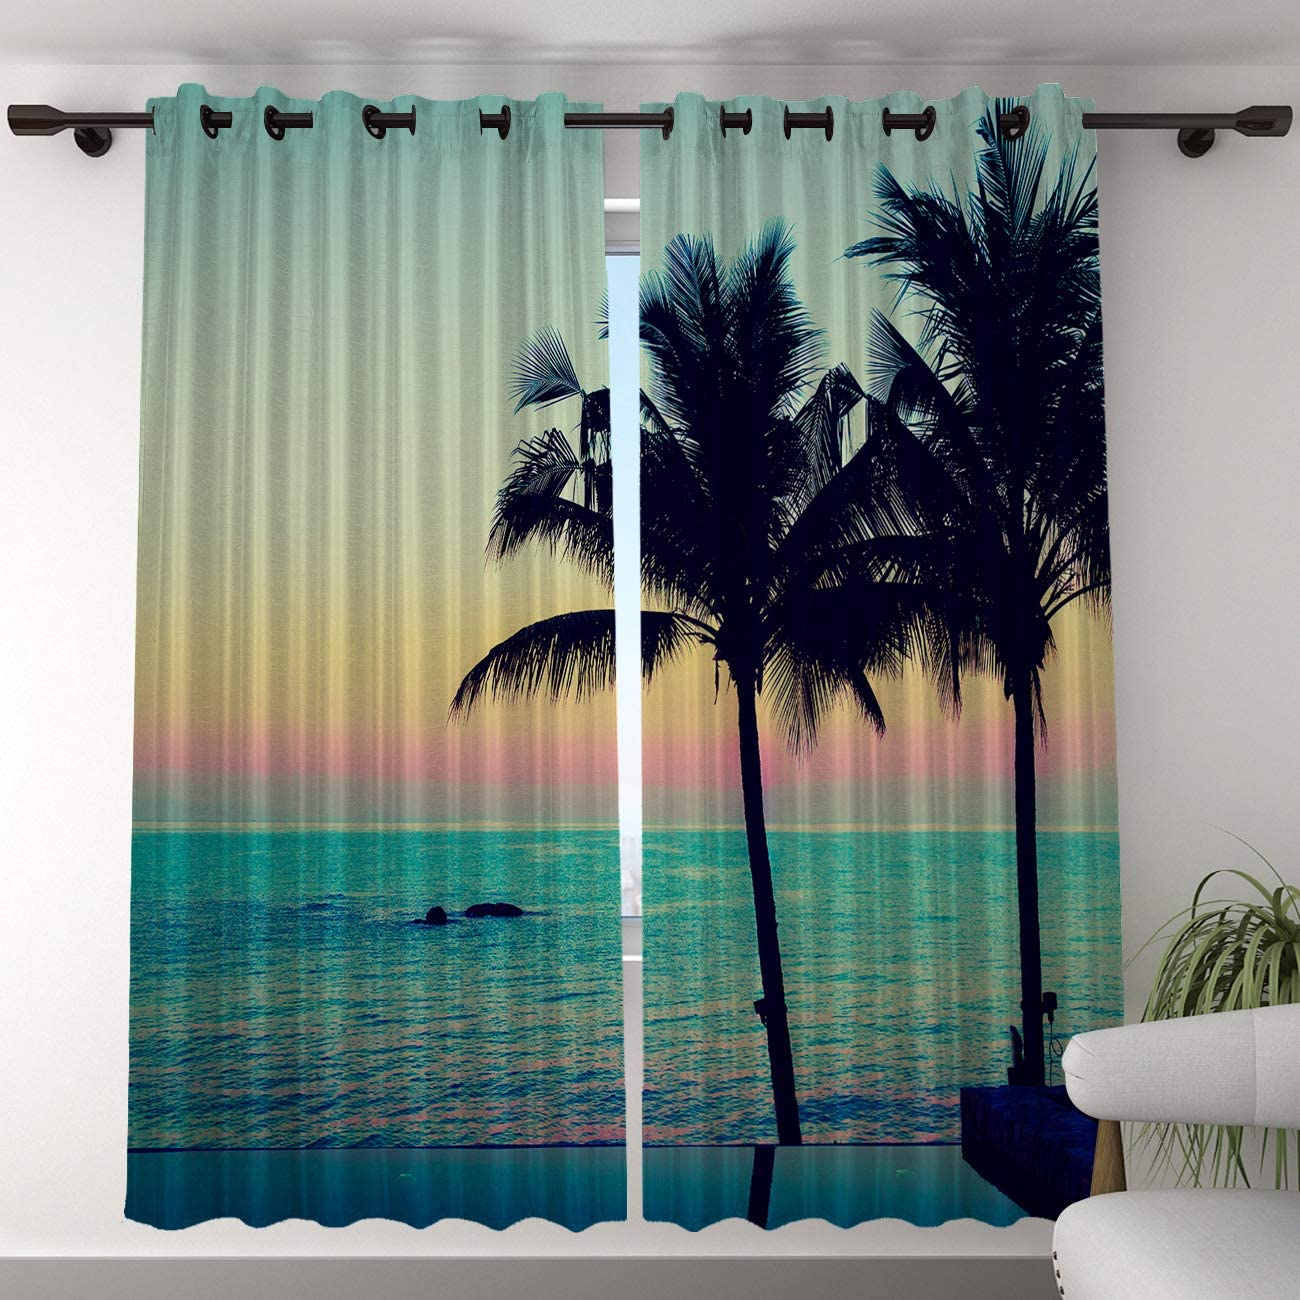 T H Home Blackout Curtain for Bedroom – 96 inch Long Darkening Draperies Curtains – Sunset, Beauty Ocean Scenery with Coconut Tree Silhouette Window Treatment Curtain Drapes